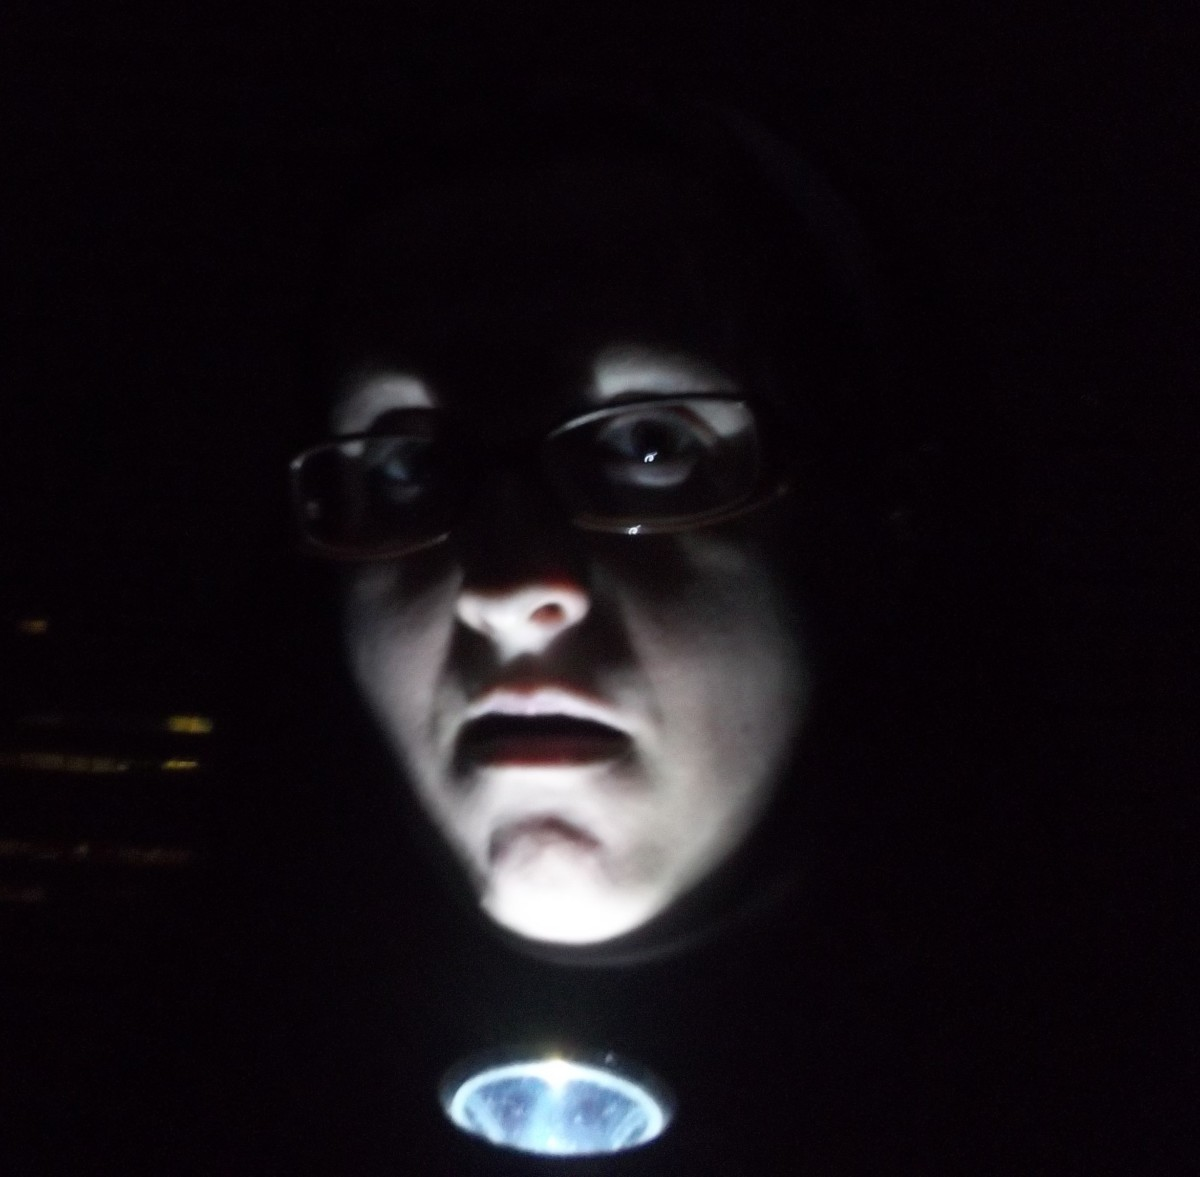 Inspired by Blair Witch Project for this photo.